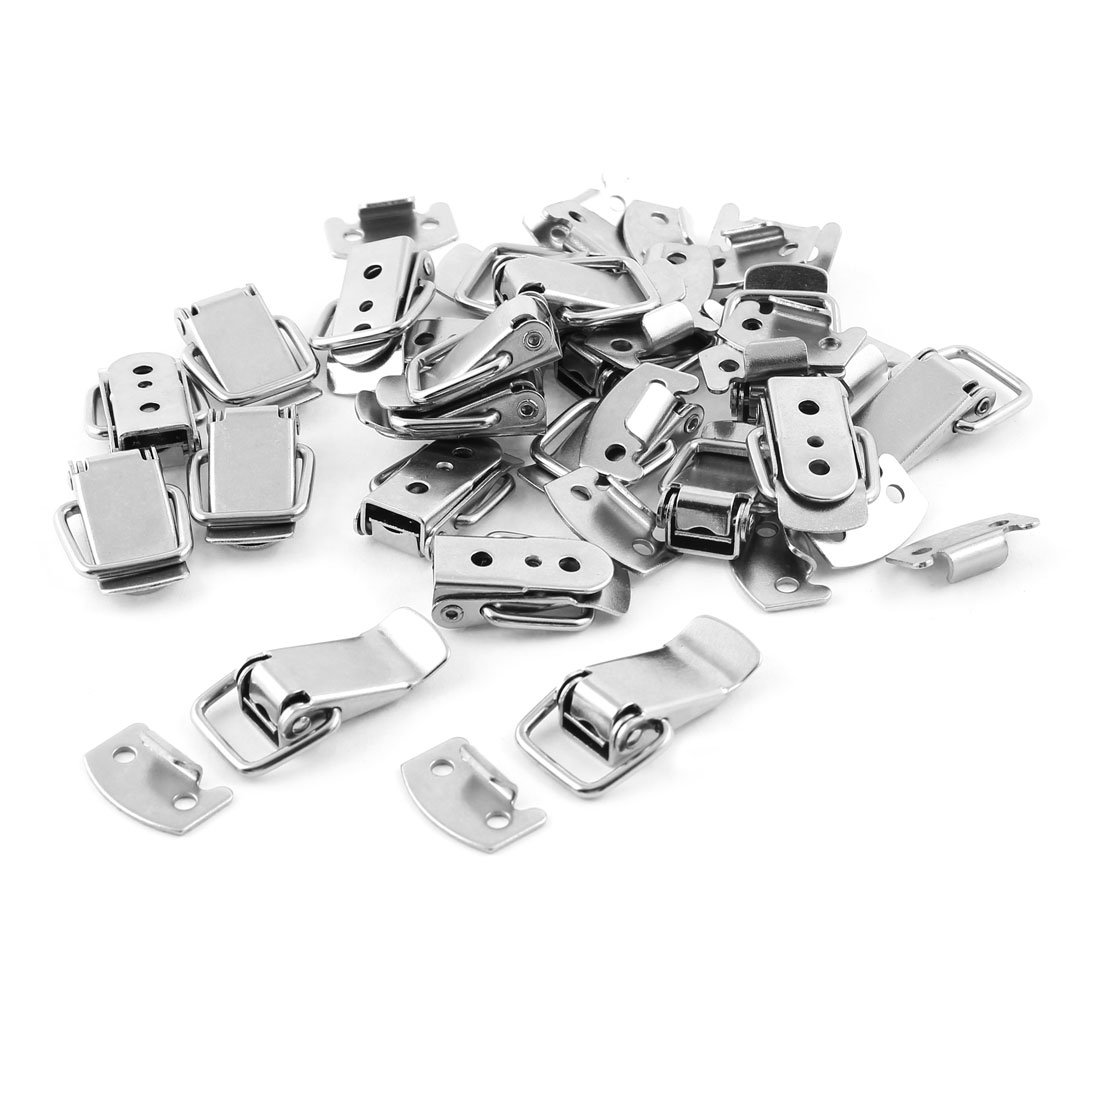 Uxcell a14051000ux0074 Metal Hardware Spring Load Box Cases Closet Toggle Latch Hasp,Silver Tone, 20-Pack